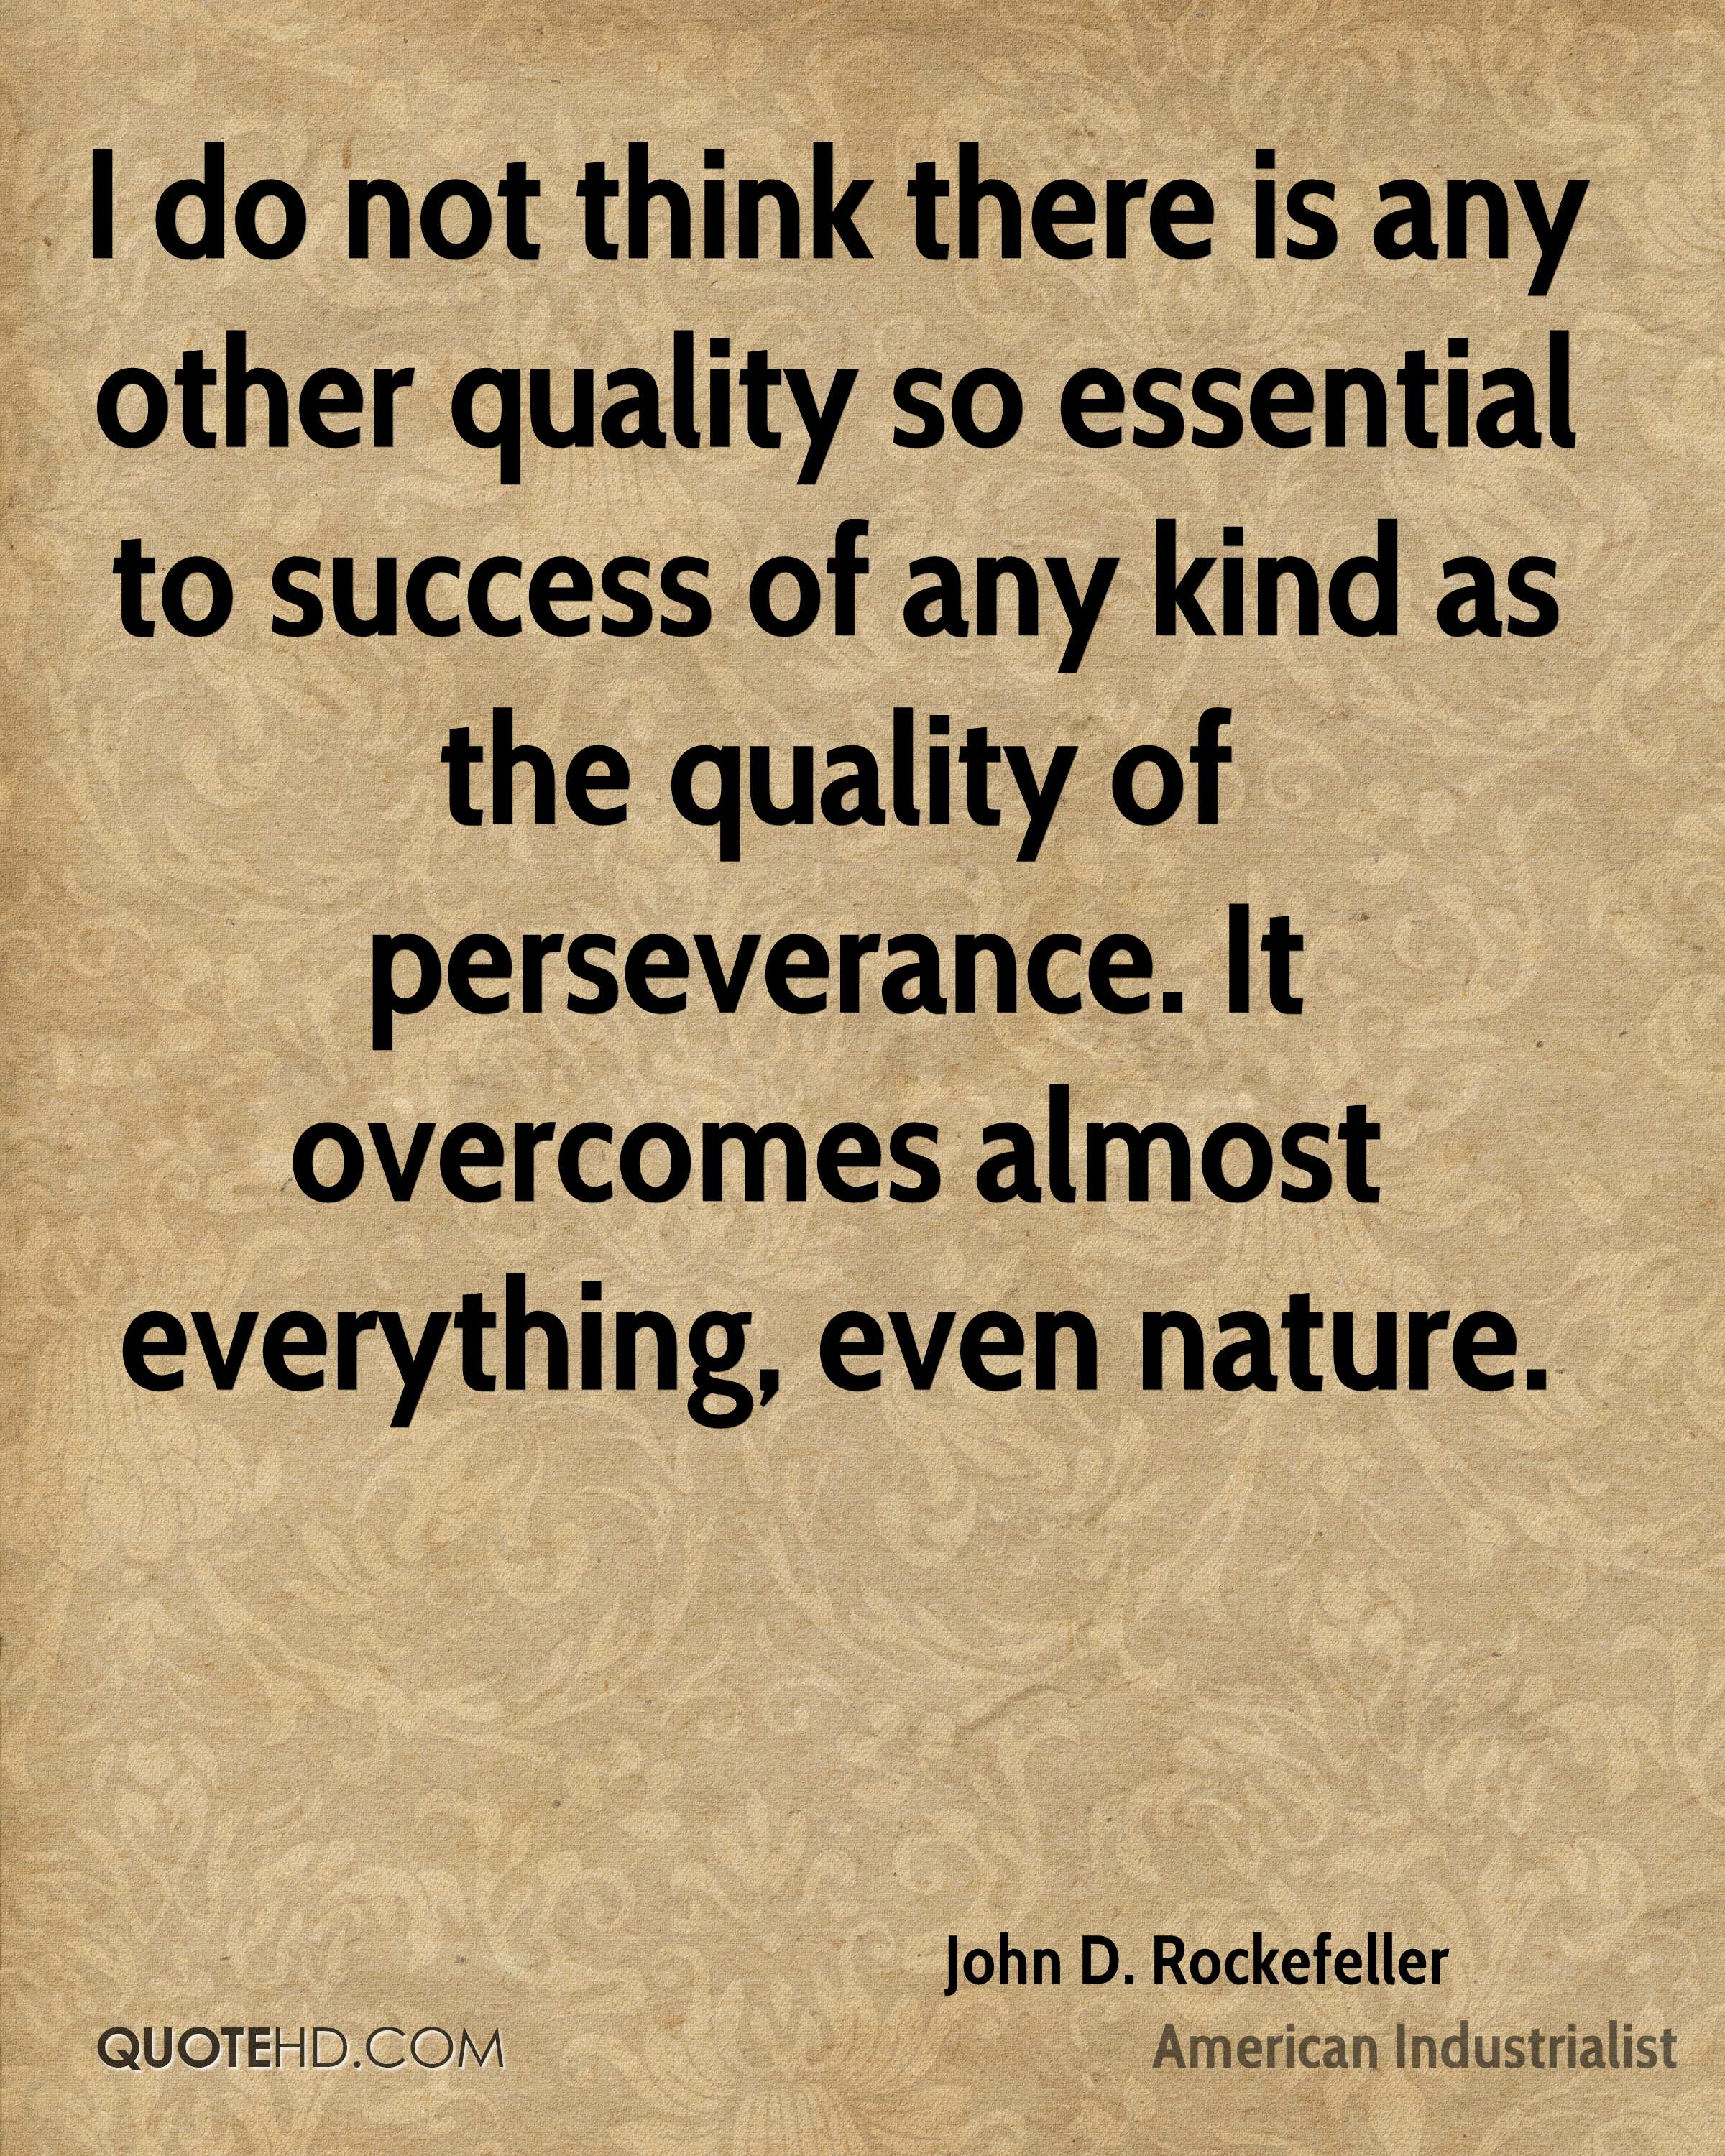 I do not think there is any other quality so essential to success of any kind as the quality of perseverance. It overcomes almost everything, even nature.